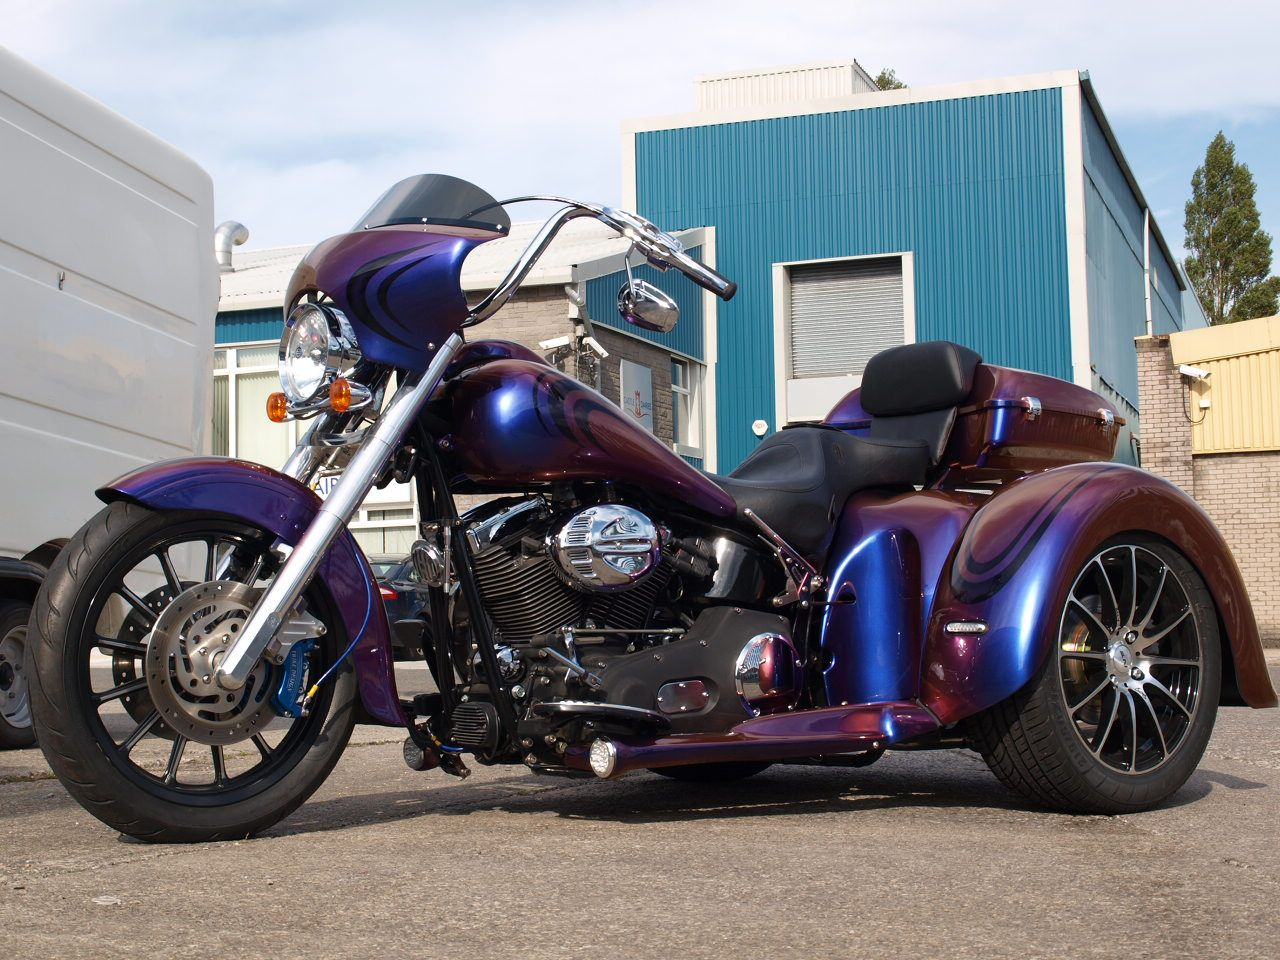 Motorcycle Trike Custom Paint Jobs This Is An Absolutely Gorgeous Bike Beautiful Paint Job And Quotes Harley Davidson Trike Harley Davidson Trike